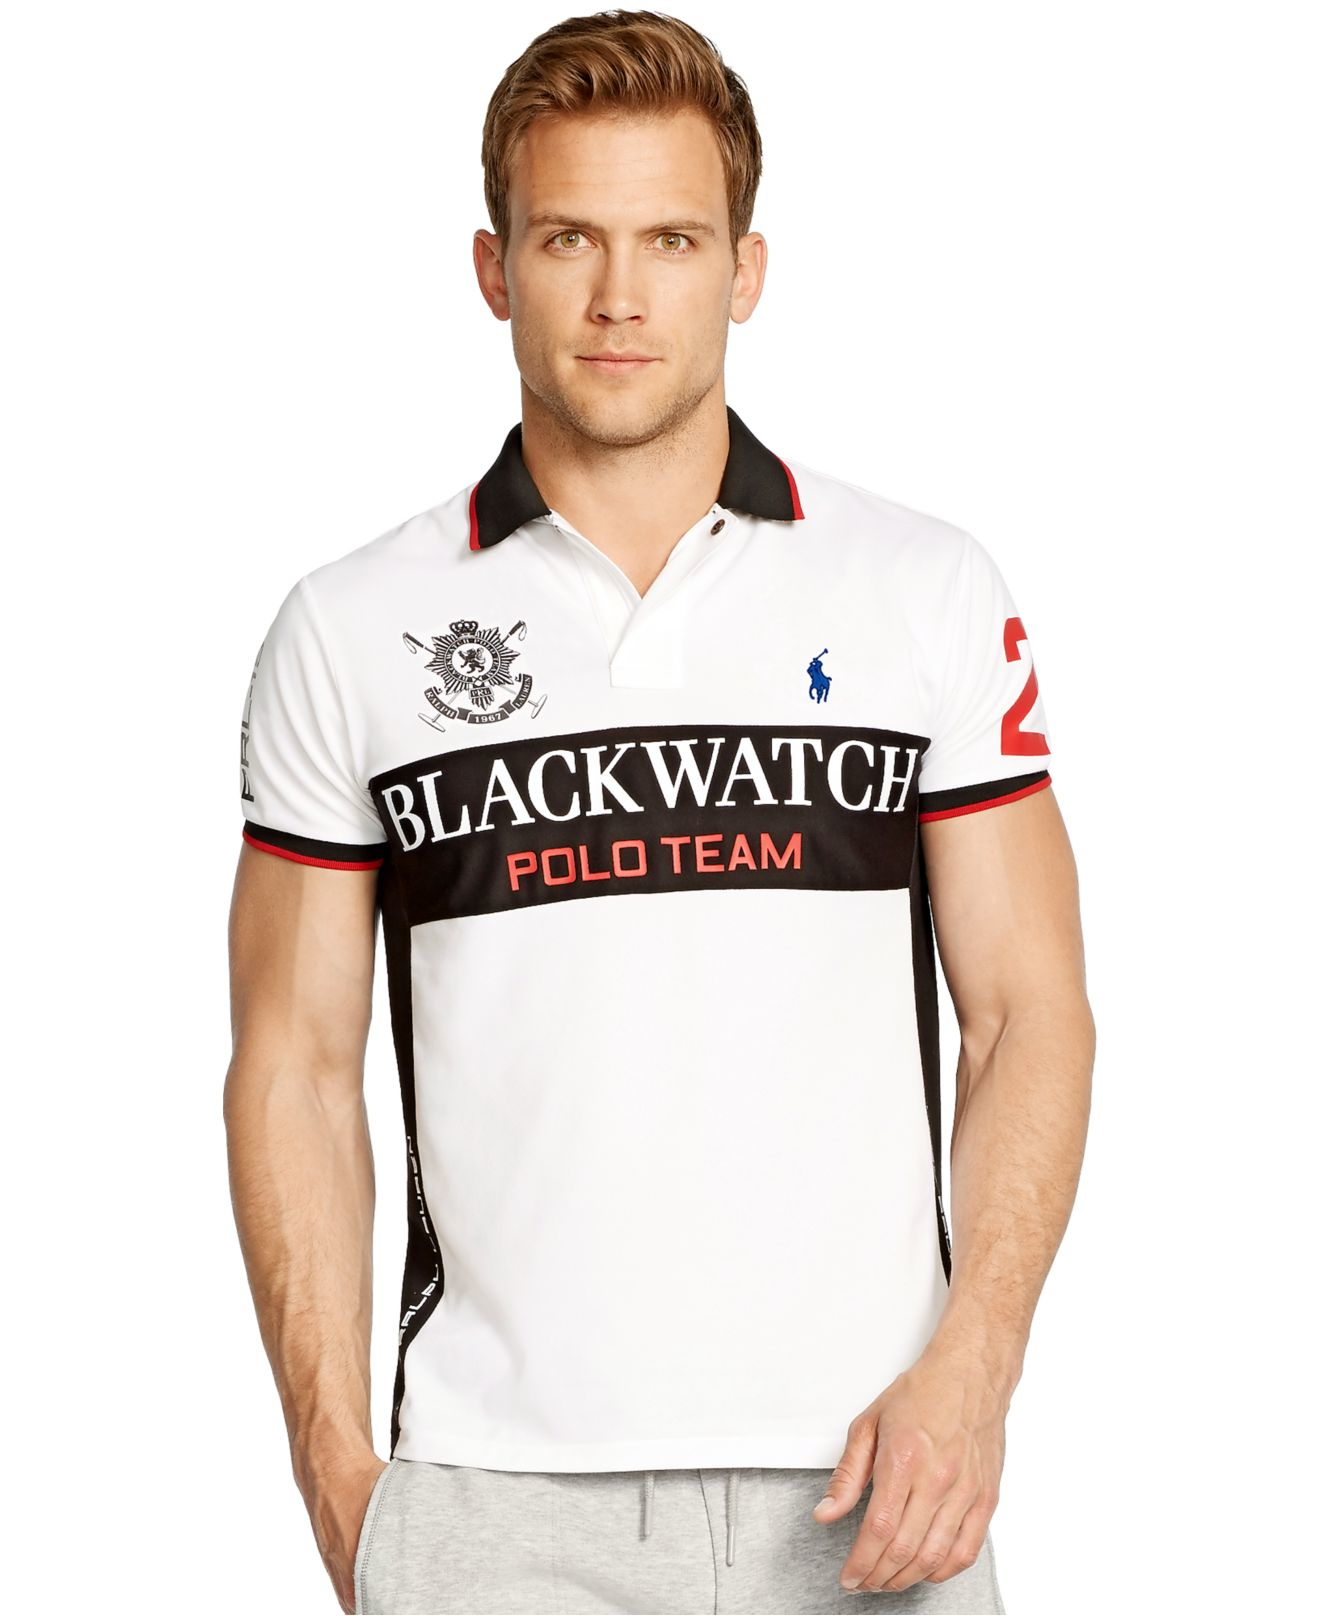 fbf98306 Polo Ralph Lauren Black Watch Custom-fit Performance Mesh Polo Shirt ...